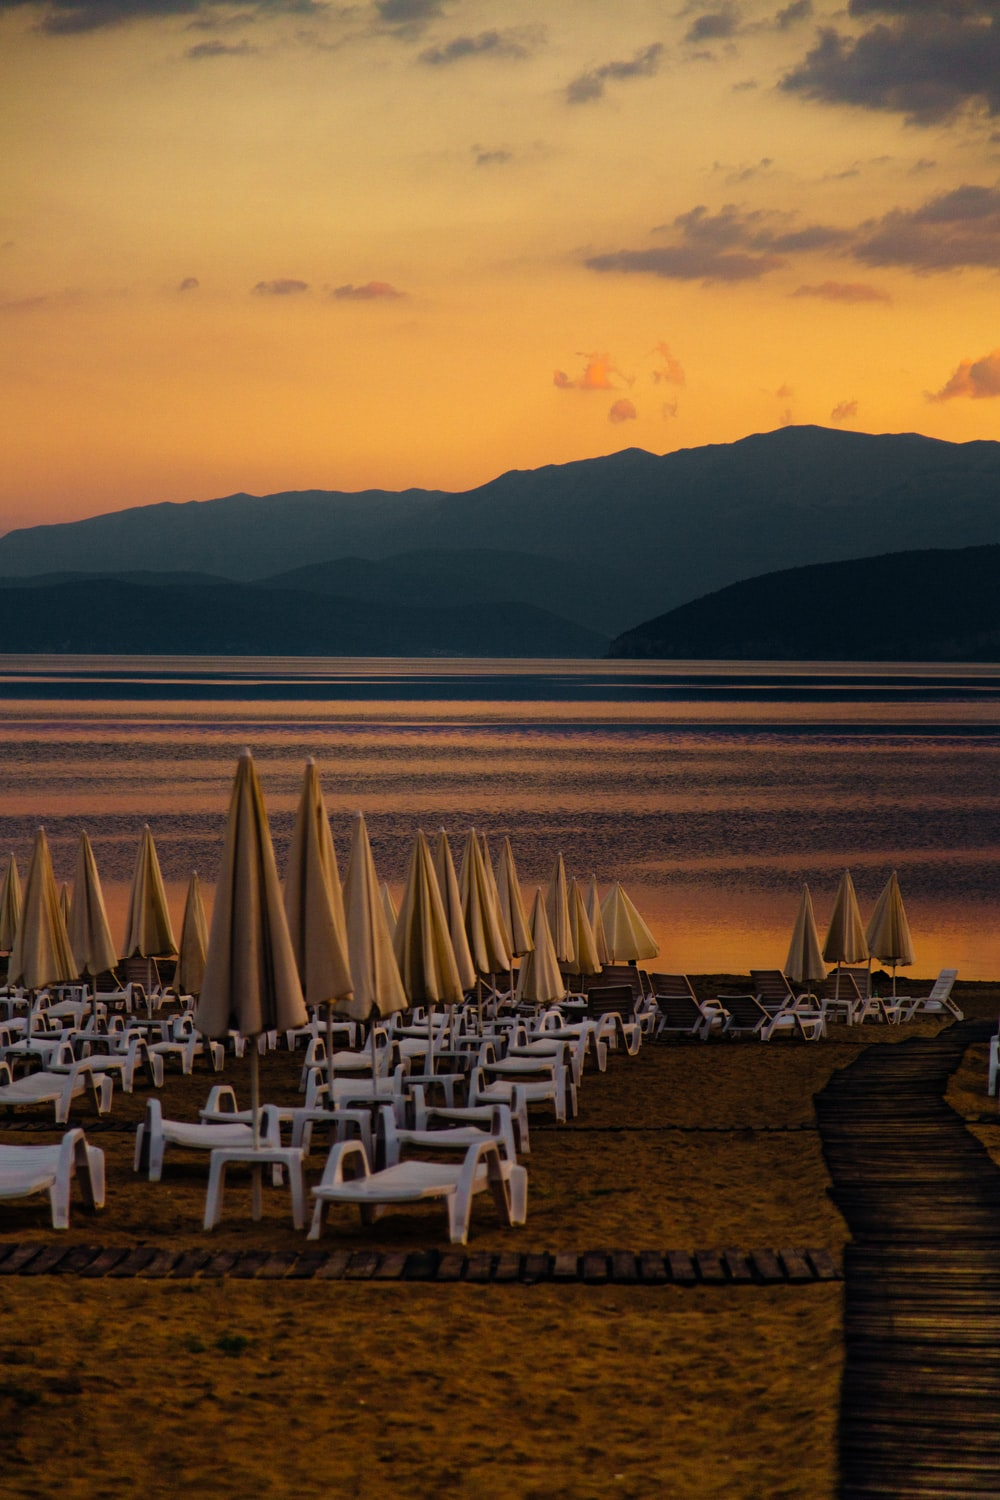 white chairs on beach during sunset